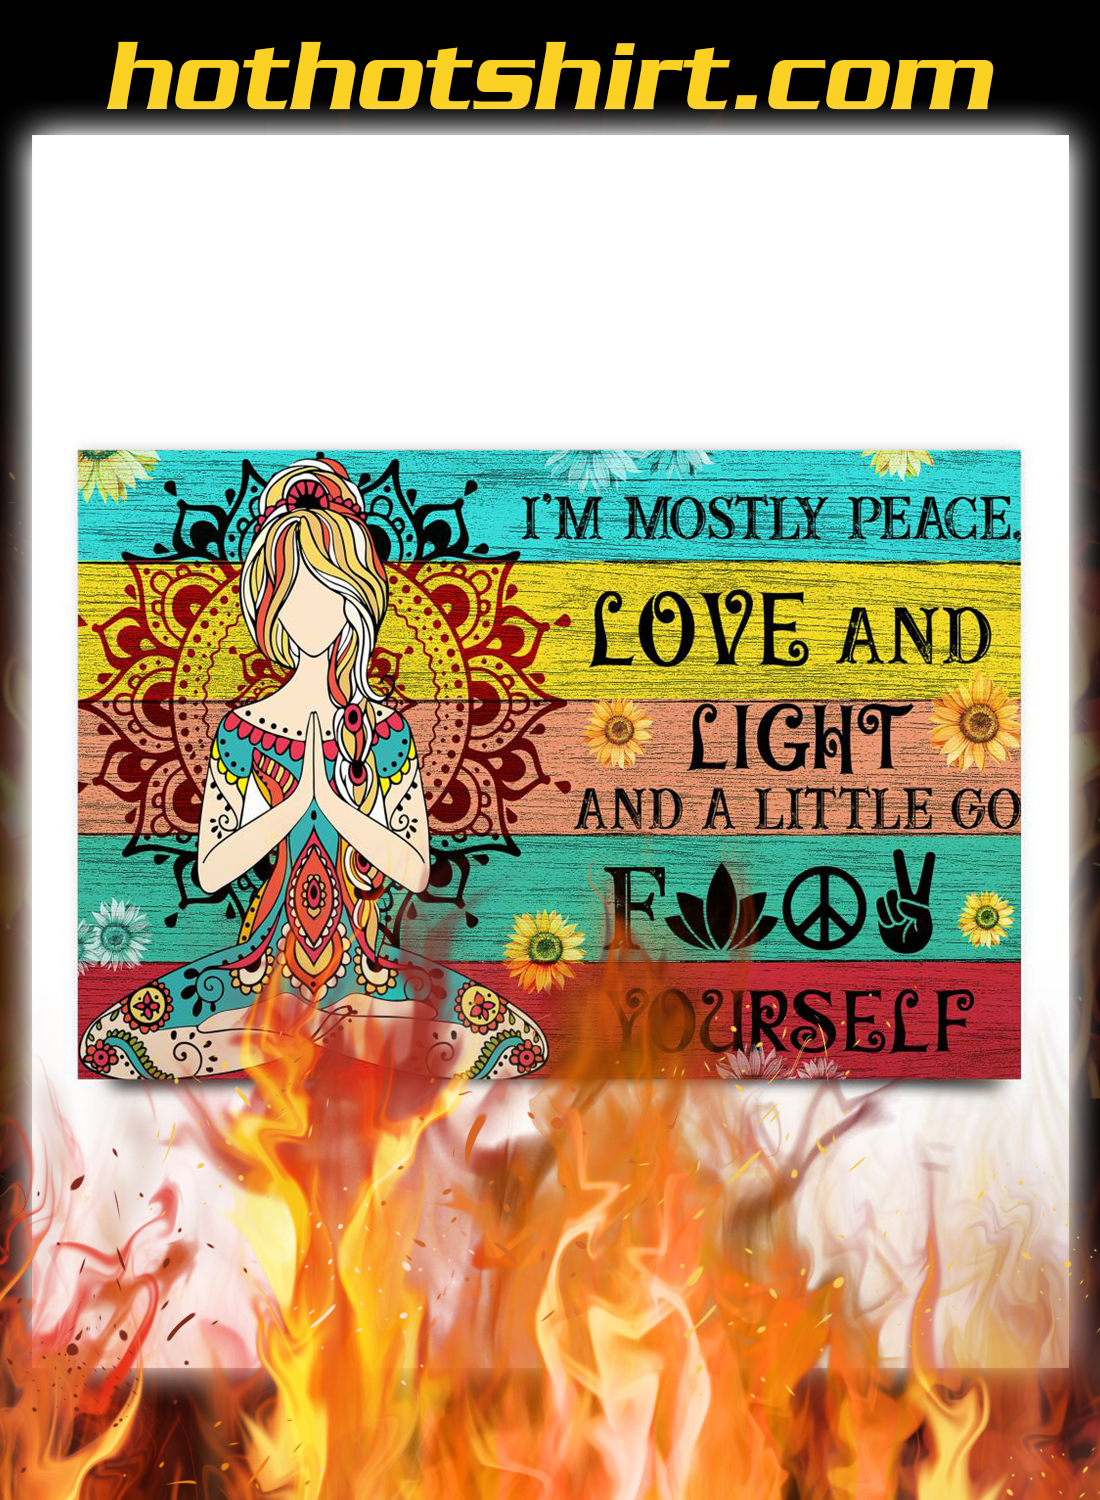 Yoga i'm mostly peace love and light and a little go fuck yourself poster A2